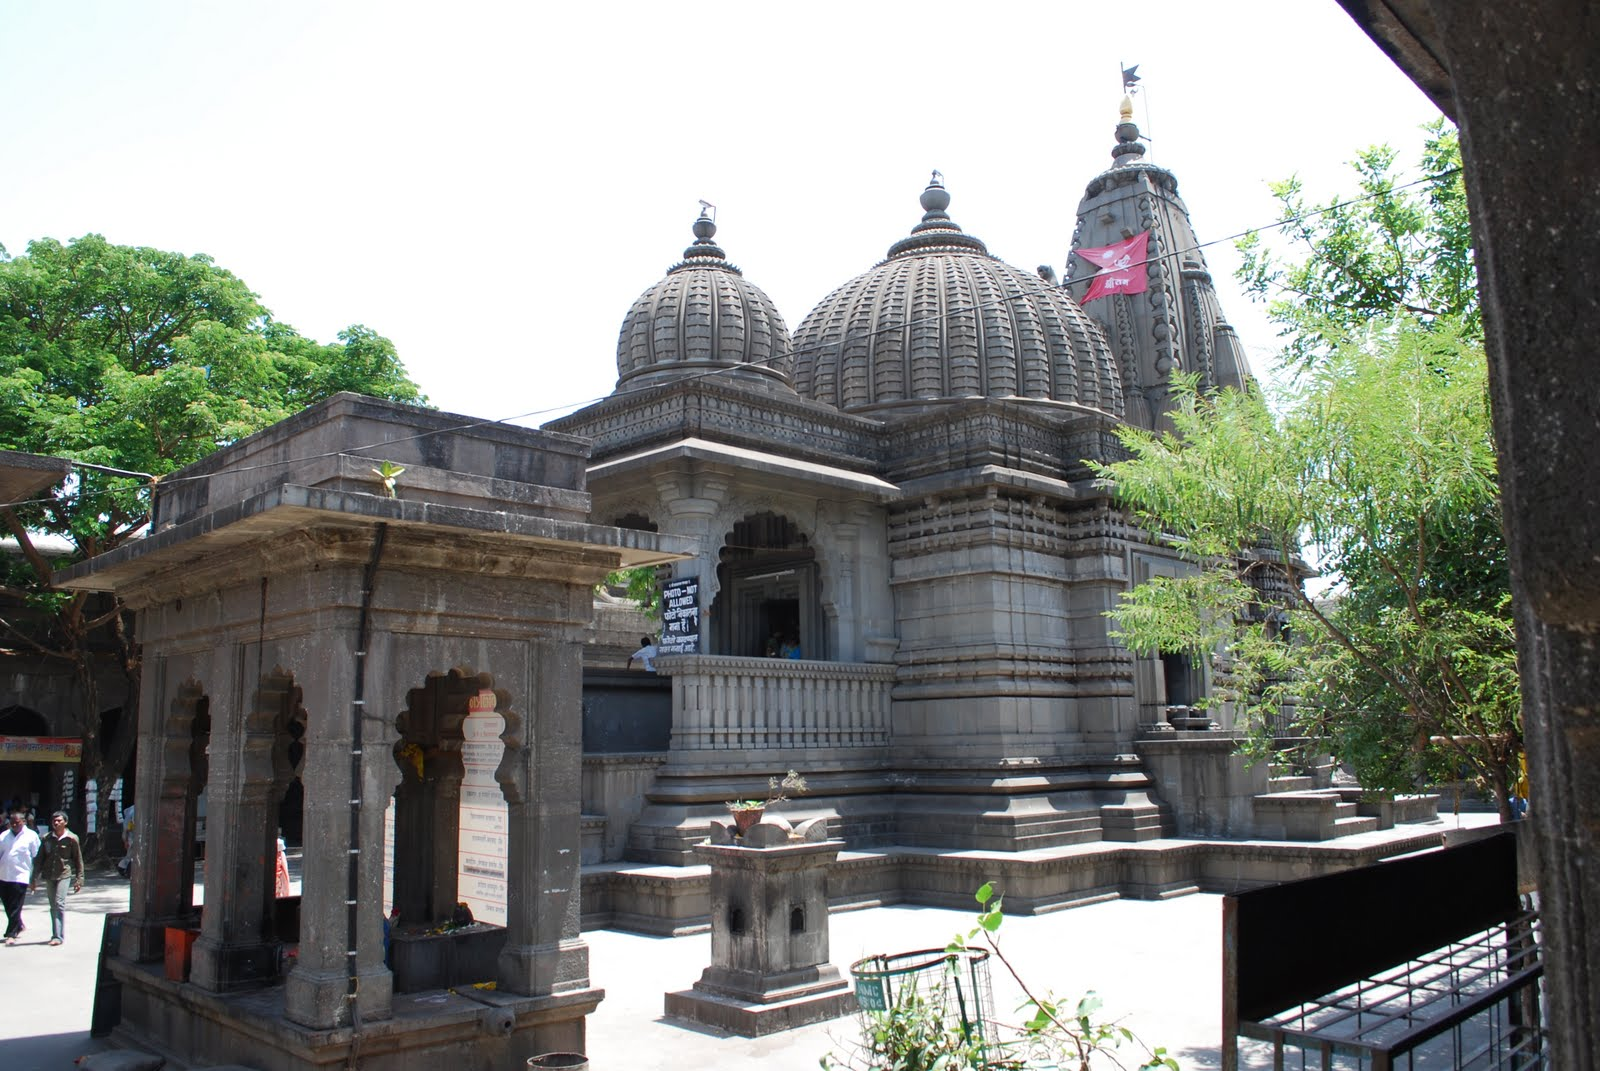 Nashik India  city photos gallery : India Rich Heritage and Culture: Nasik The Pilgrimage and Temple ...